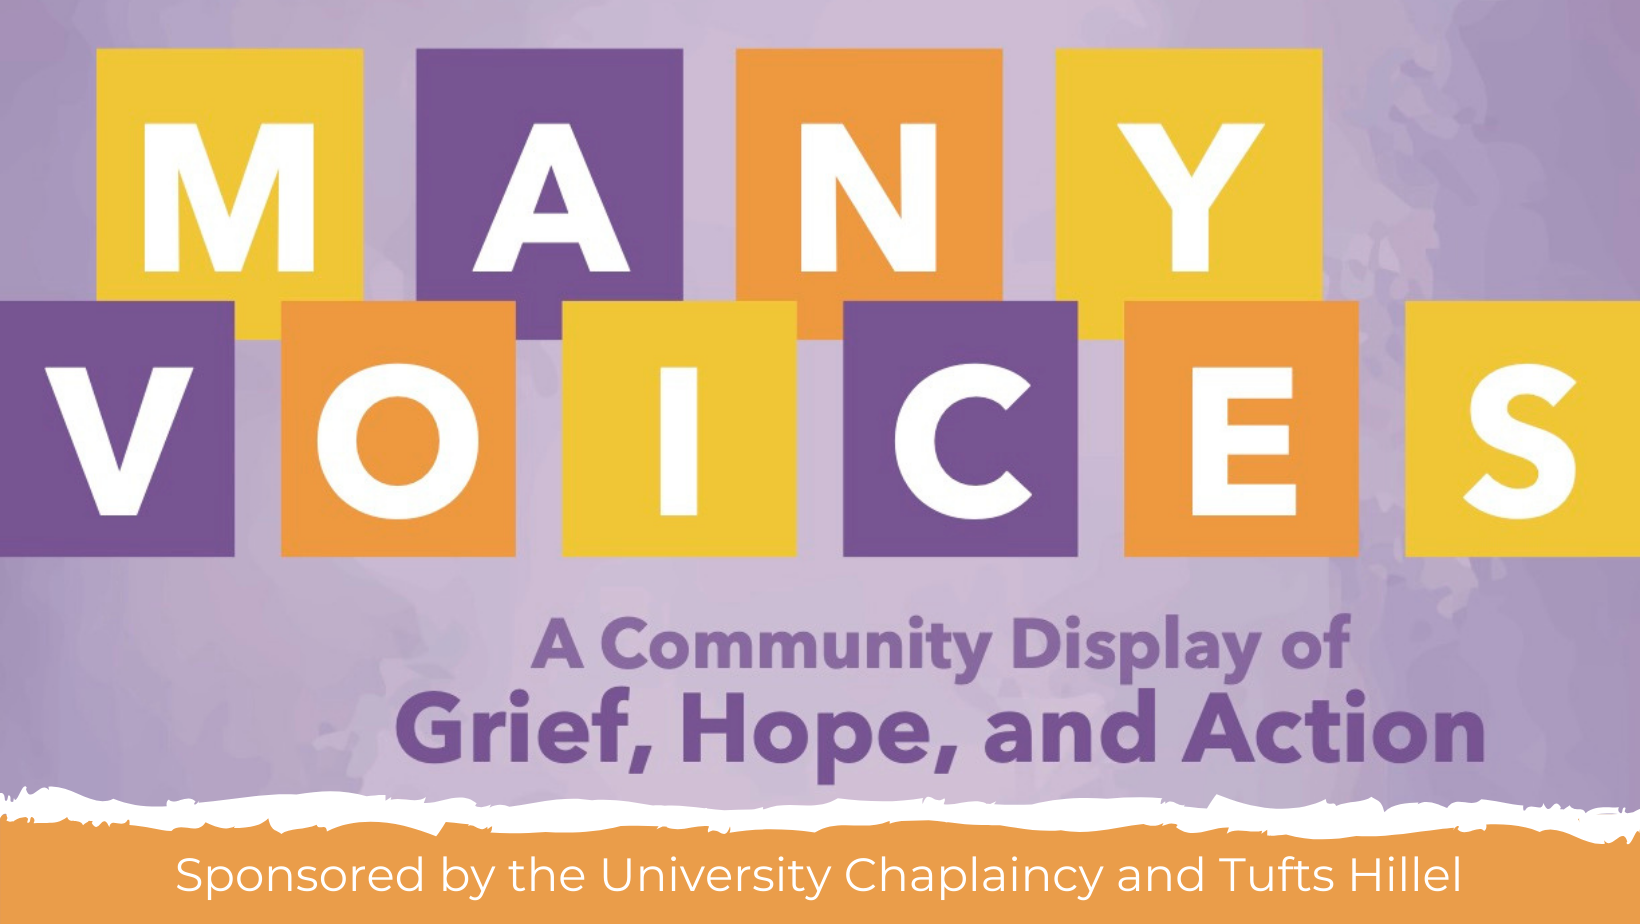 Many Voices: A Community Display of Grief, Hope, and Action